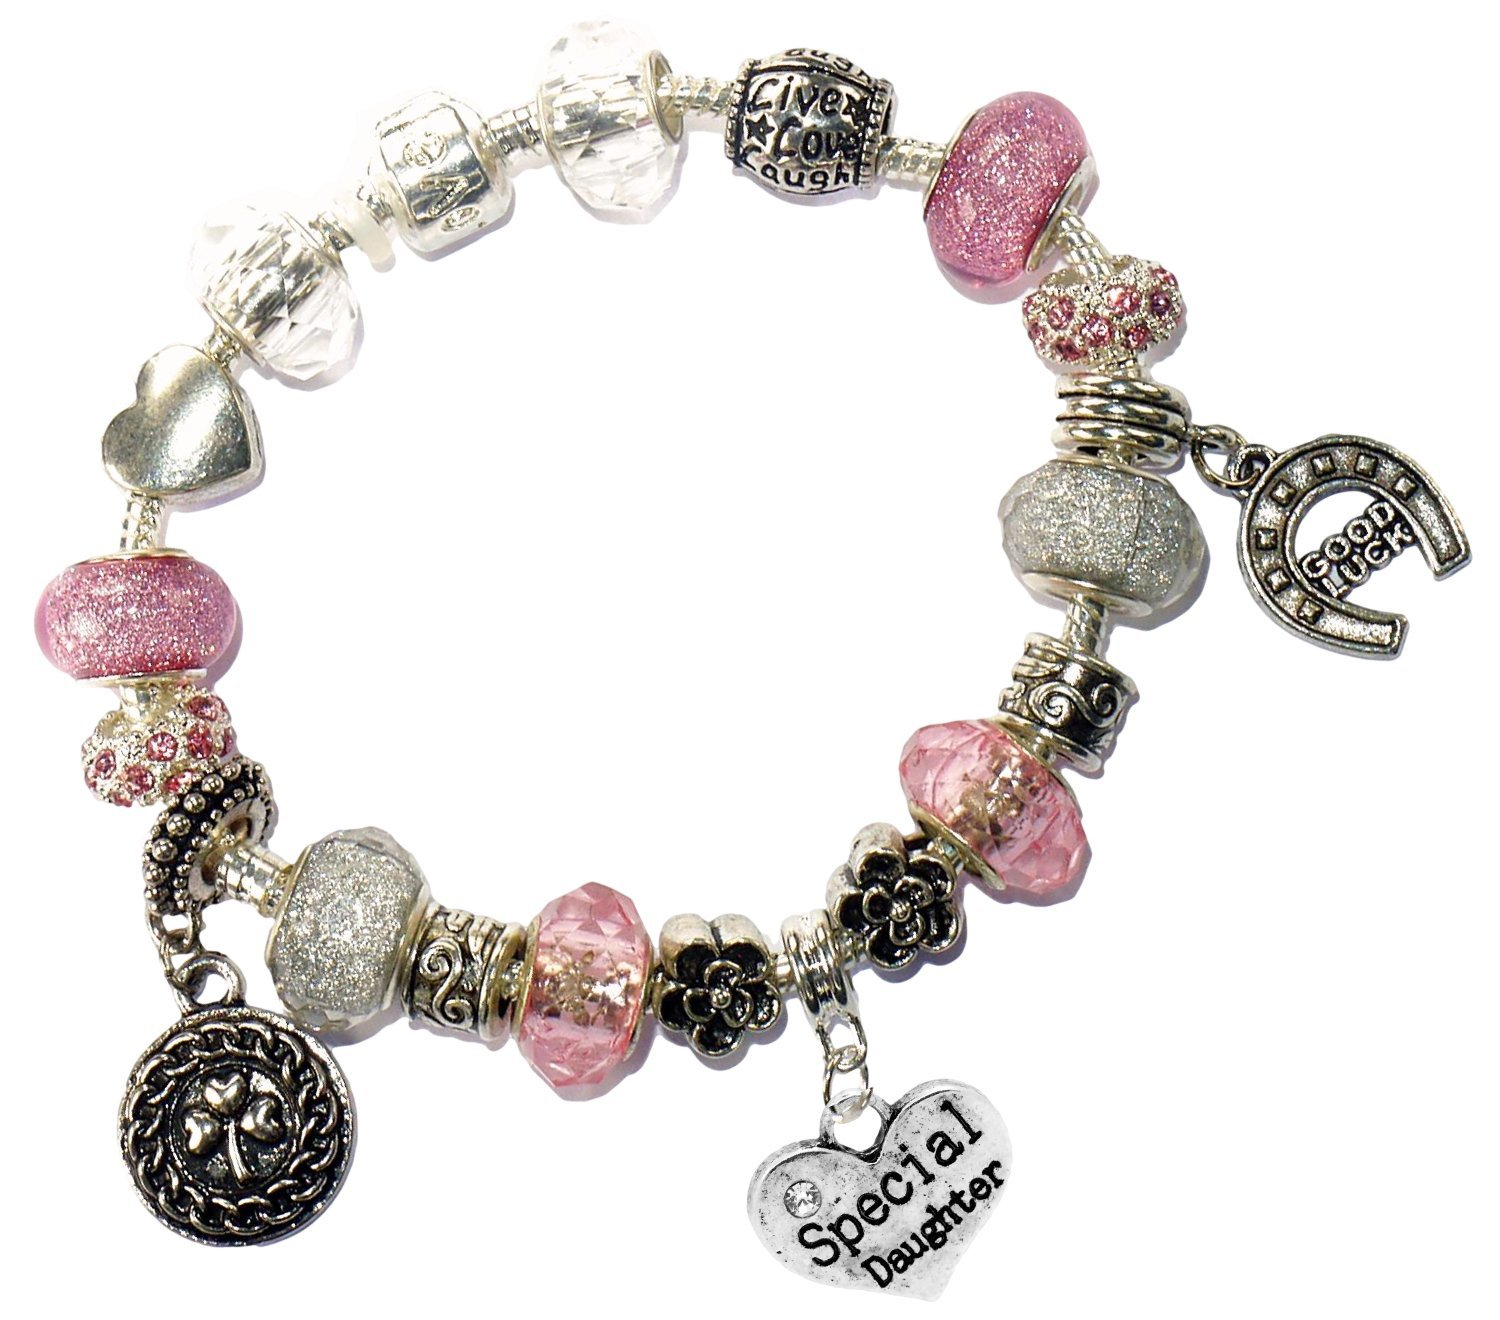 Charm Buddy Special Daughter Pink Silver Crystal Good Luck Pandora Style Bracelet With Charms Gift Box by Charm Buddy (Image #2)